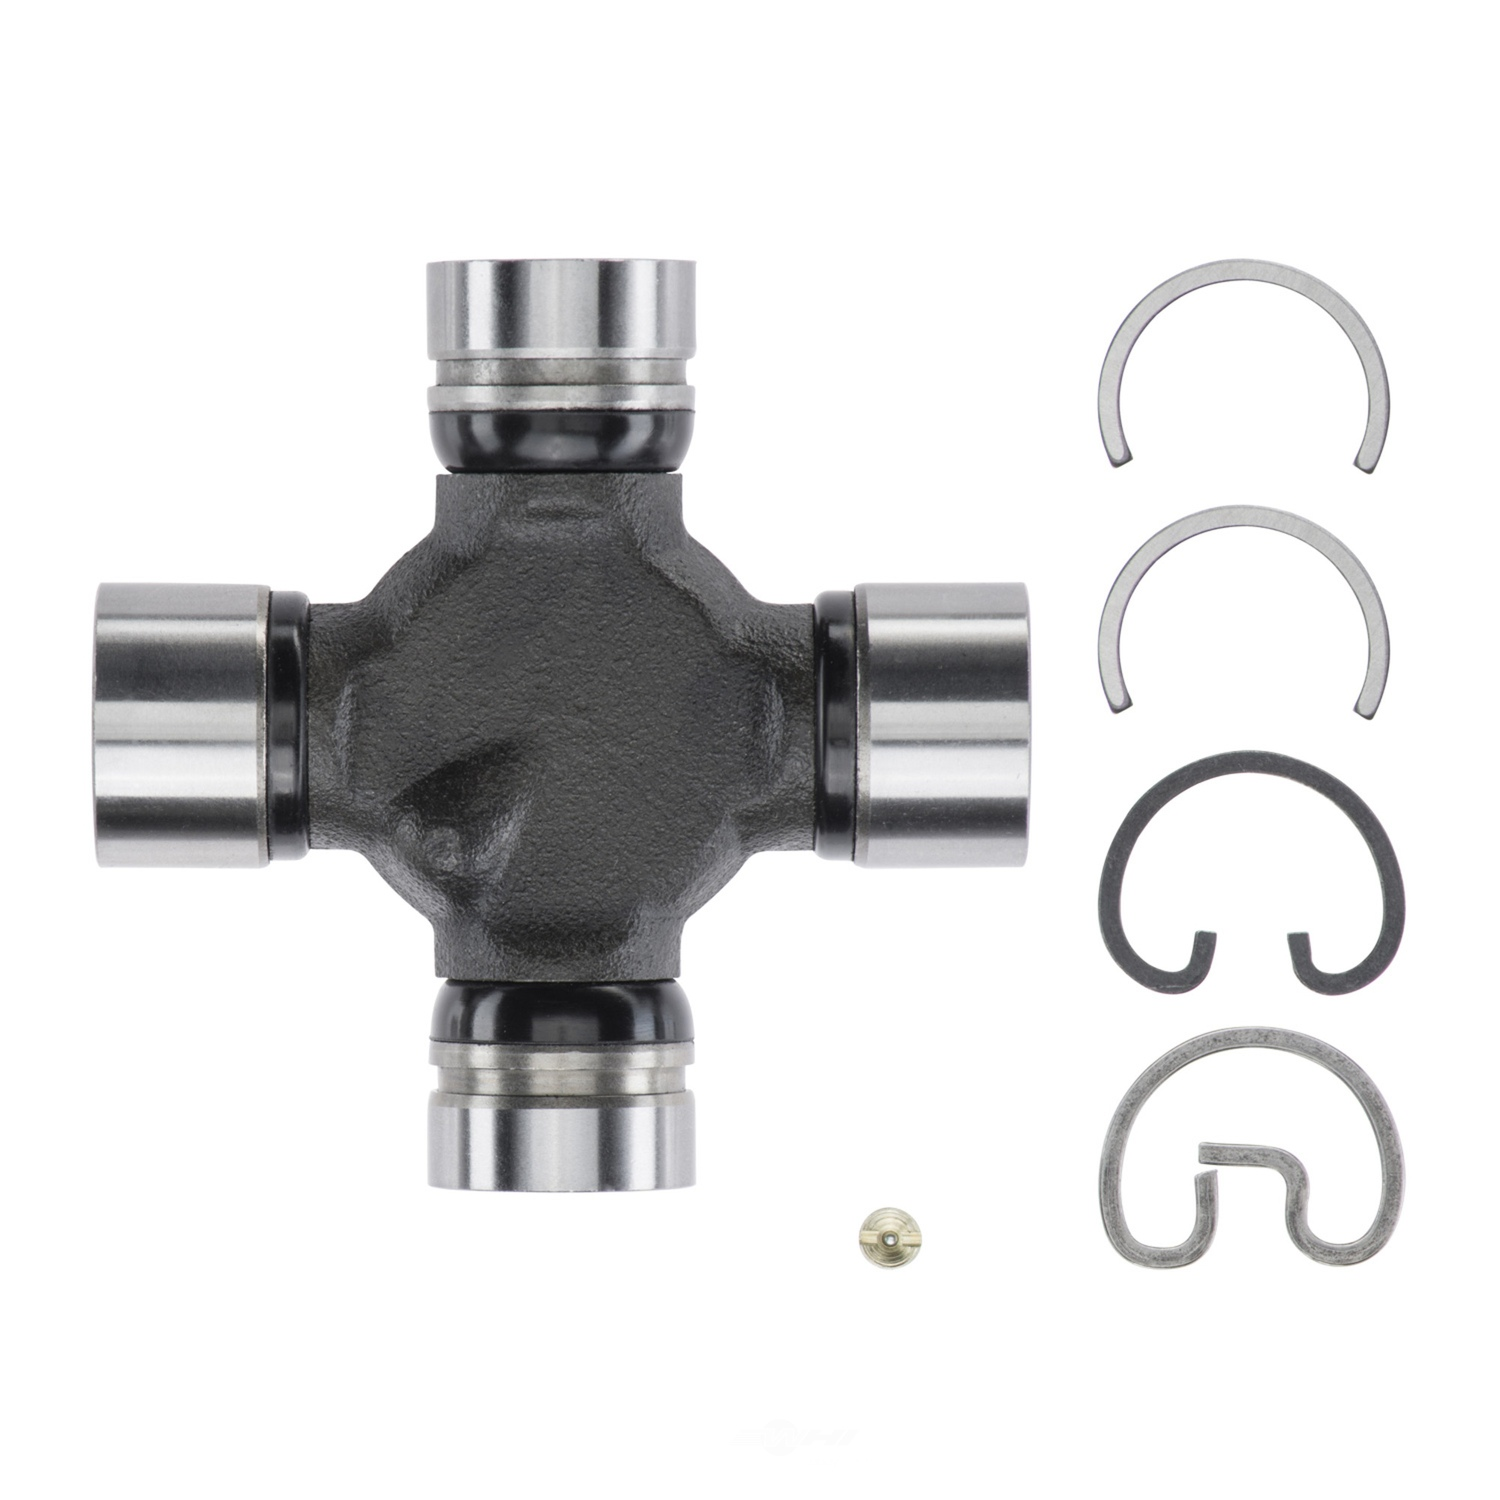 MOOG DRIVELINE PRODUCTS - Universal Joint - MDP 265